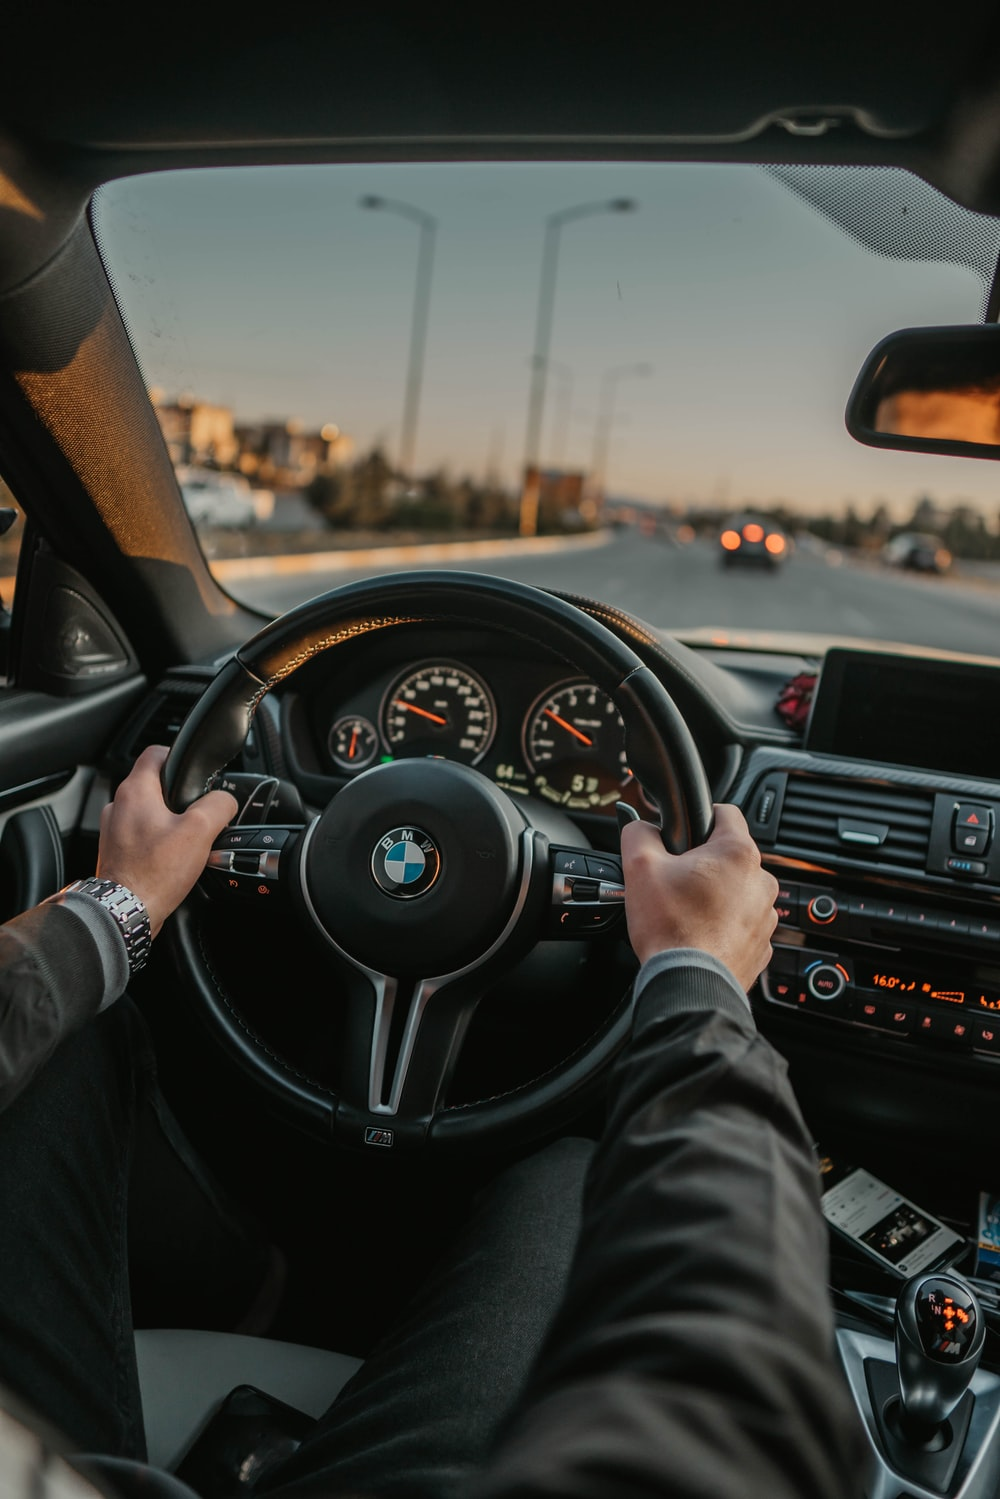 Unknown Person Driving Bmw Car Photo Free Human Image On